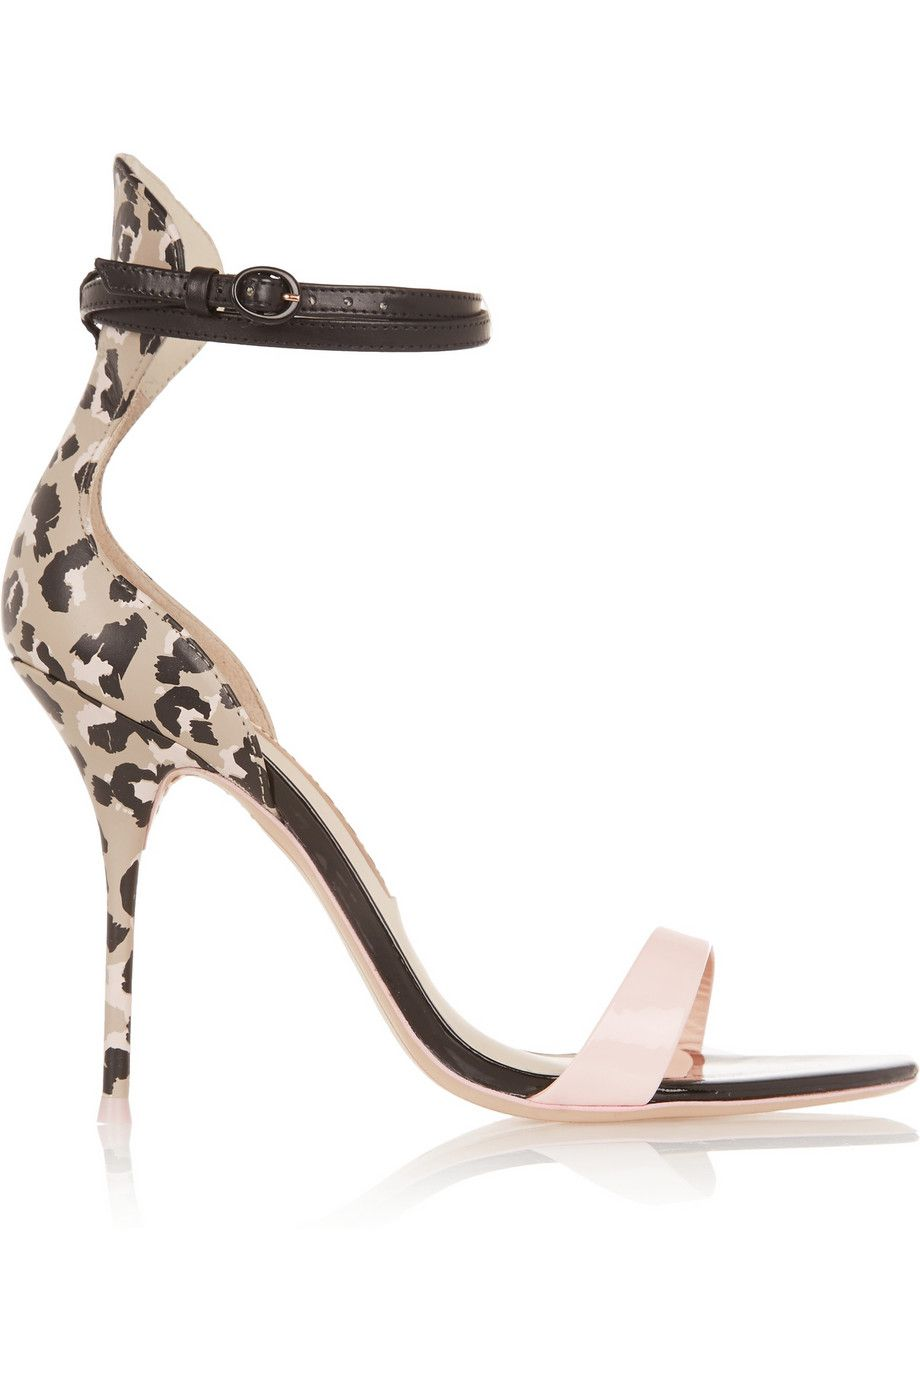 Nicole Patent-leather Sandals - Black Sophia Webster Outlet Low Shipping Factory Outlet For Sale Geniue Stockist Online Clearance Discount Low Shipping Fee Cheap Price MNsj6cfq8v